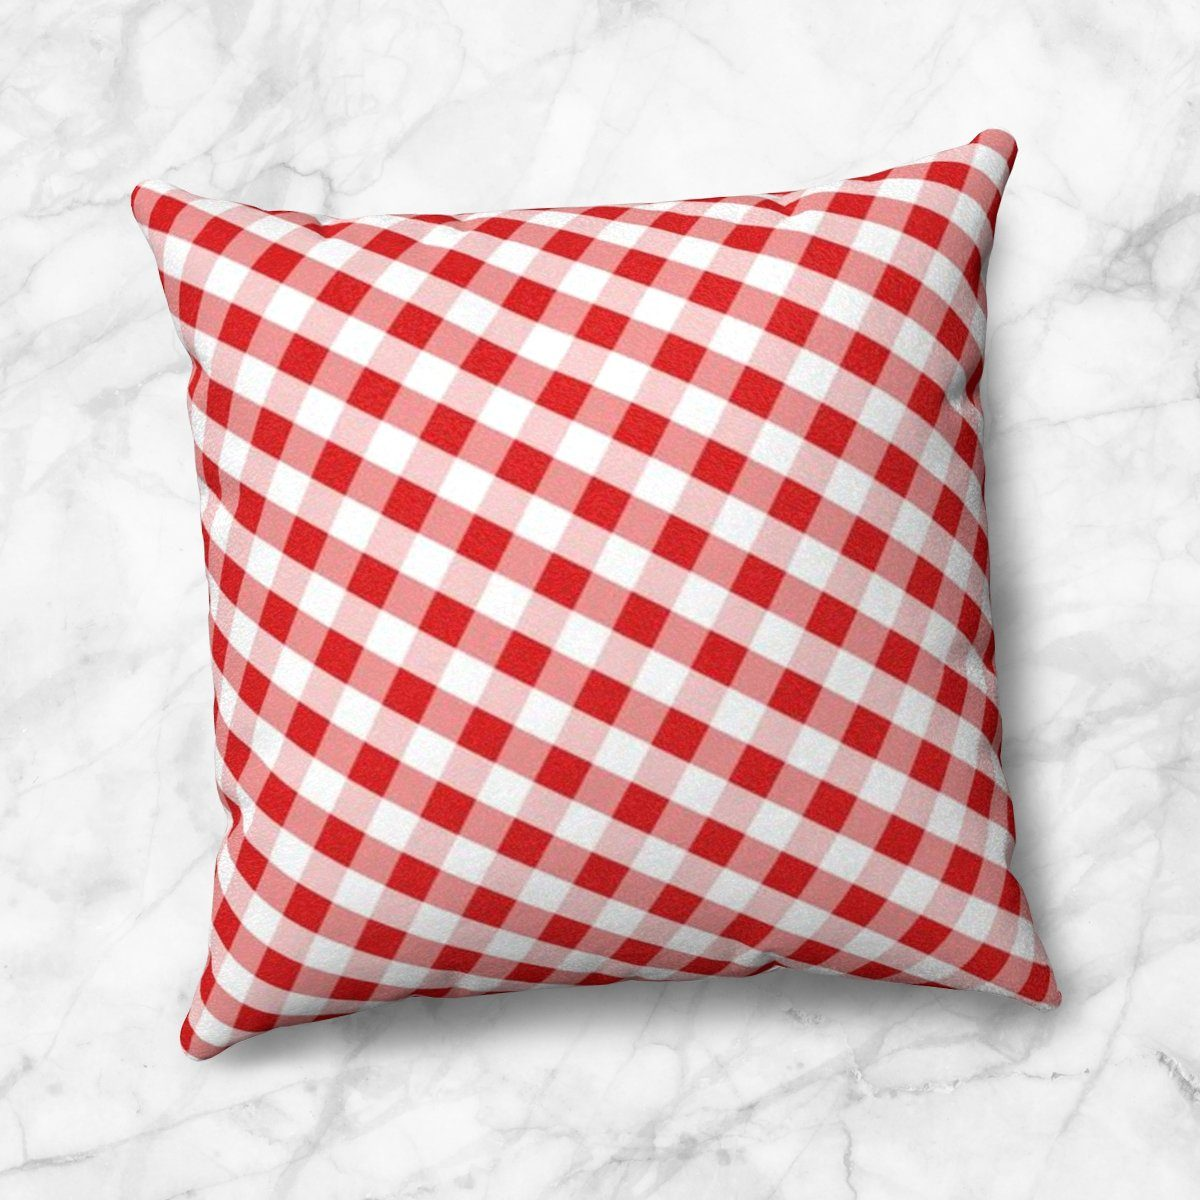 Red Gingham Throw Pillow at Speckle Rock